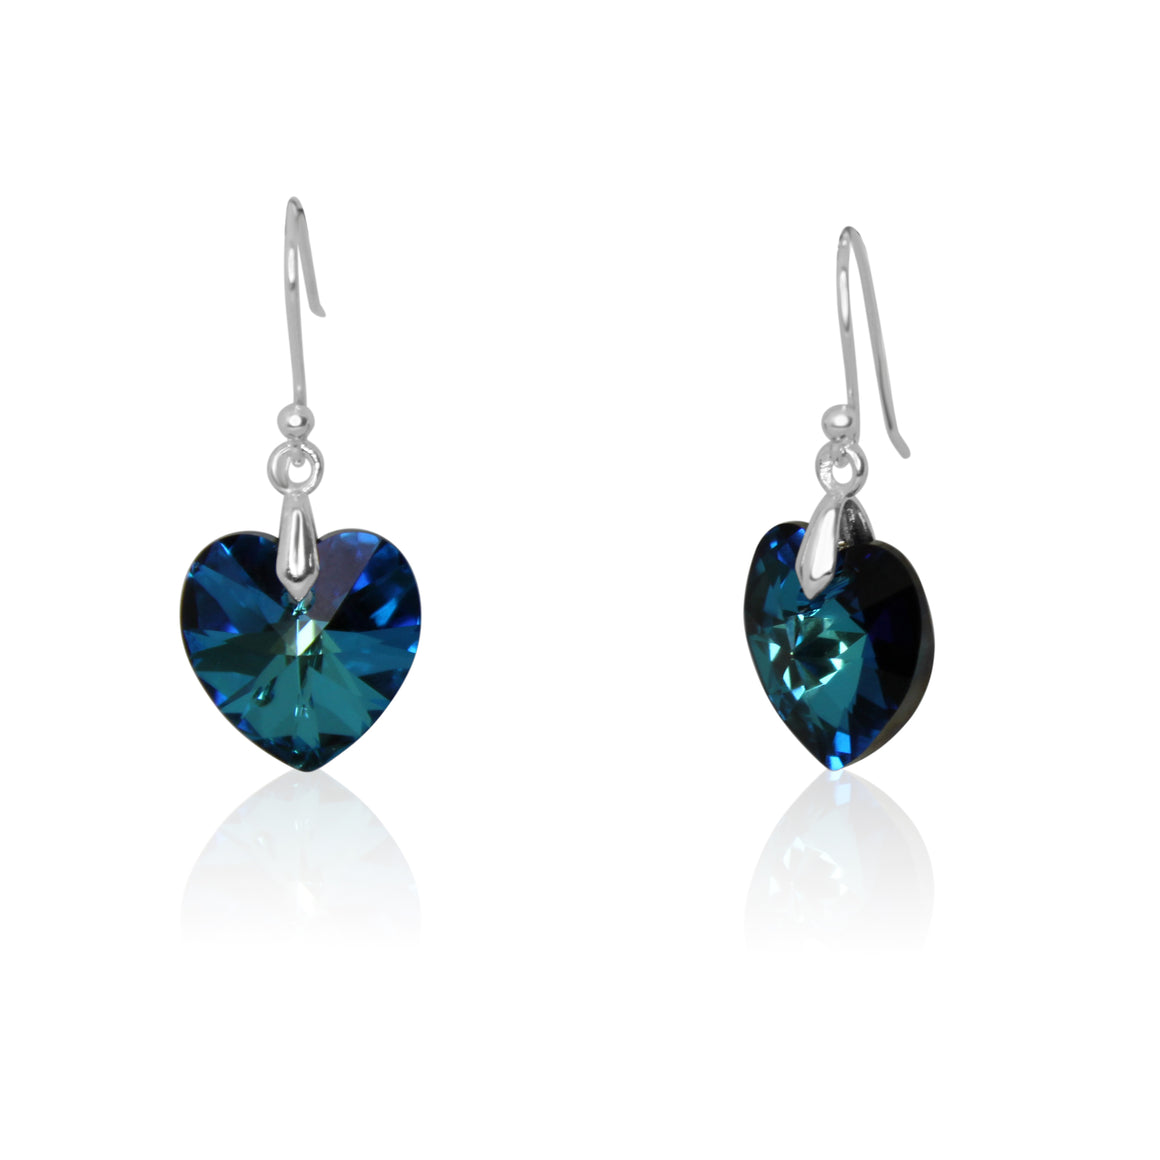 Earrings - Swarovski Heart - turquoise - choose hook colour